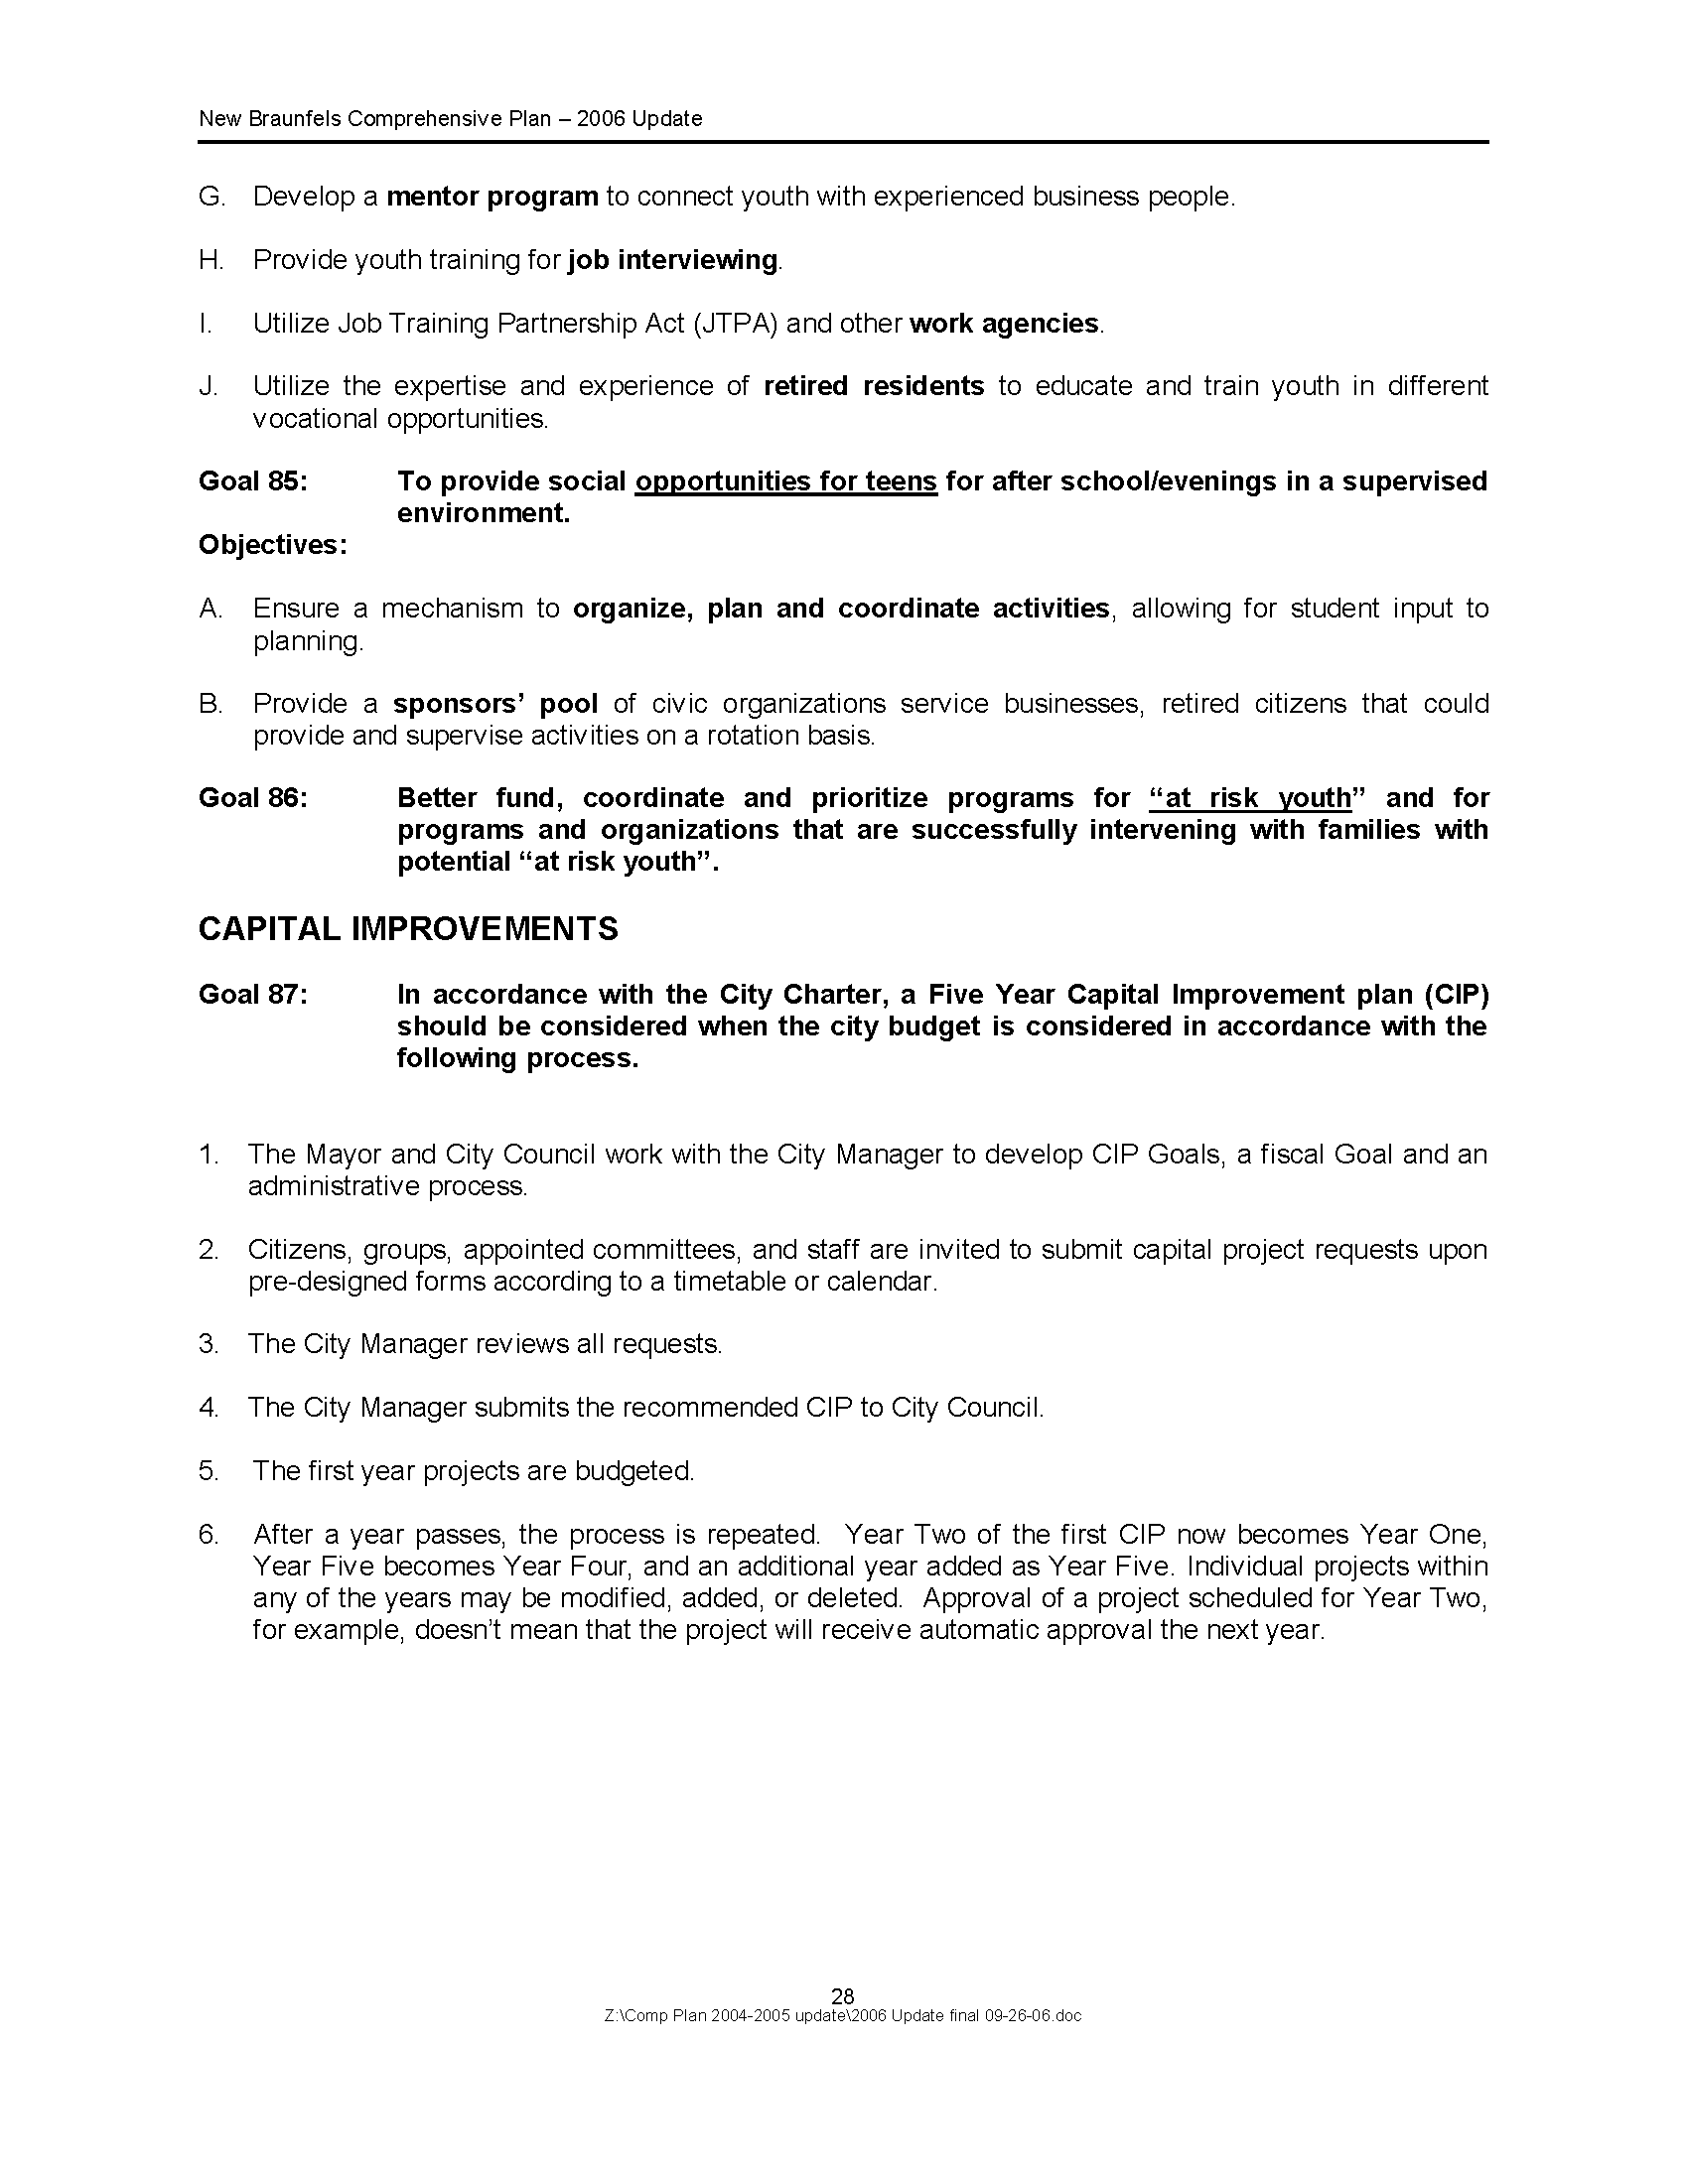 Goals + Objectives_Page_28.png